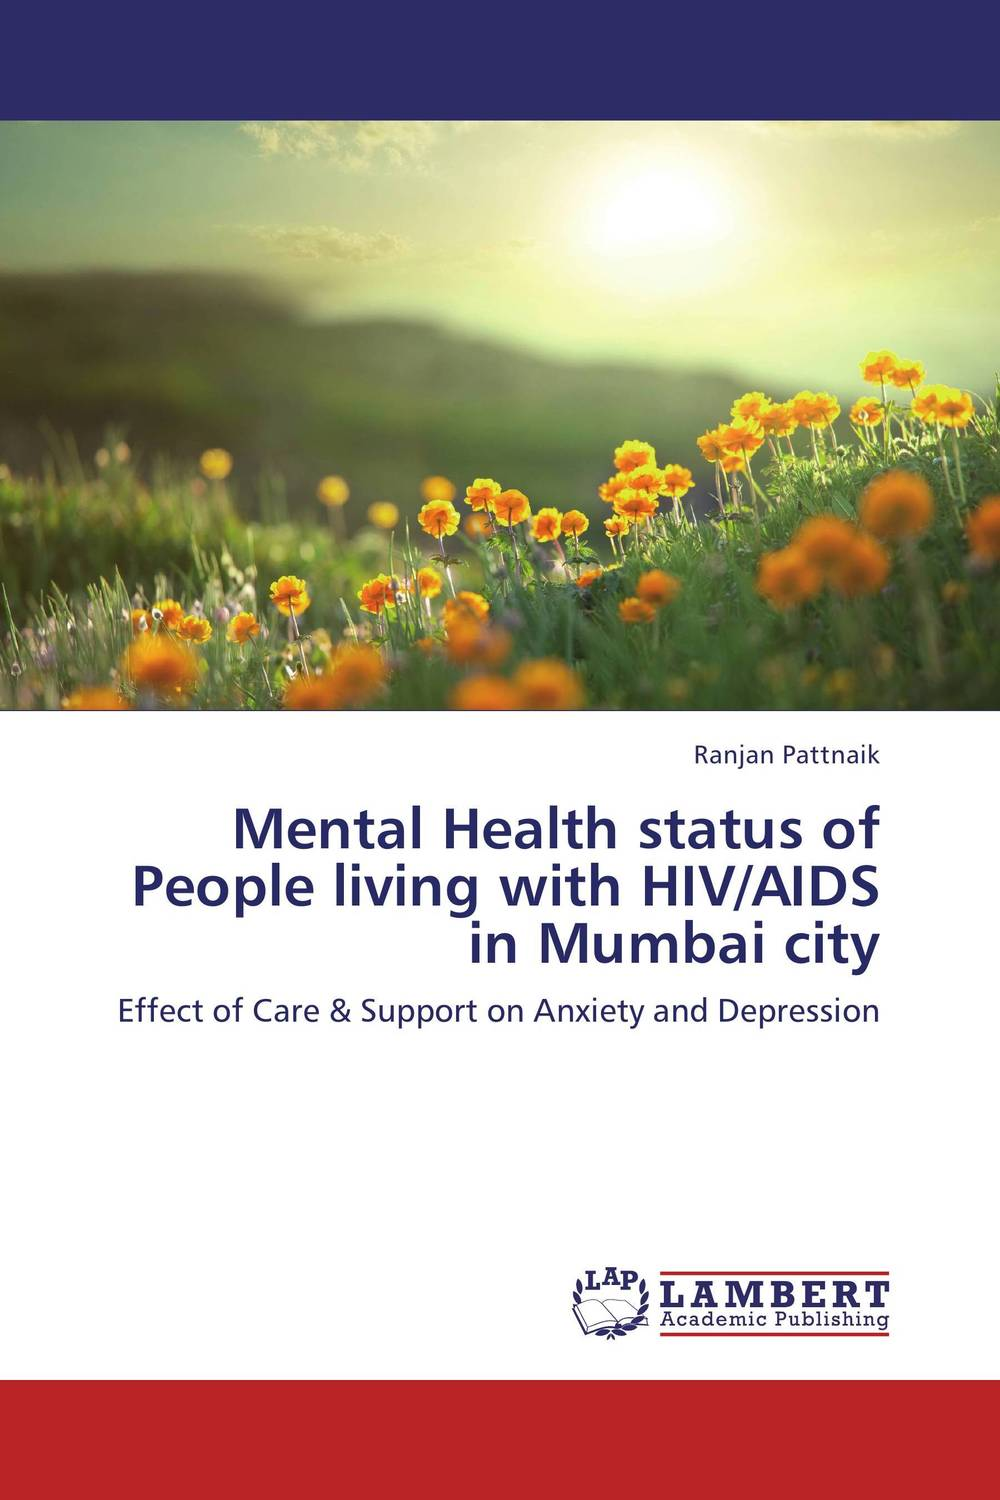 Mental Health status of People living with HIV/AIDS in Mumbai city neuropsychological functions in depression with anxiety disorders